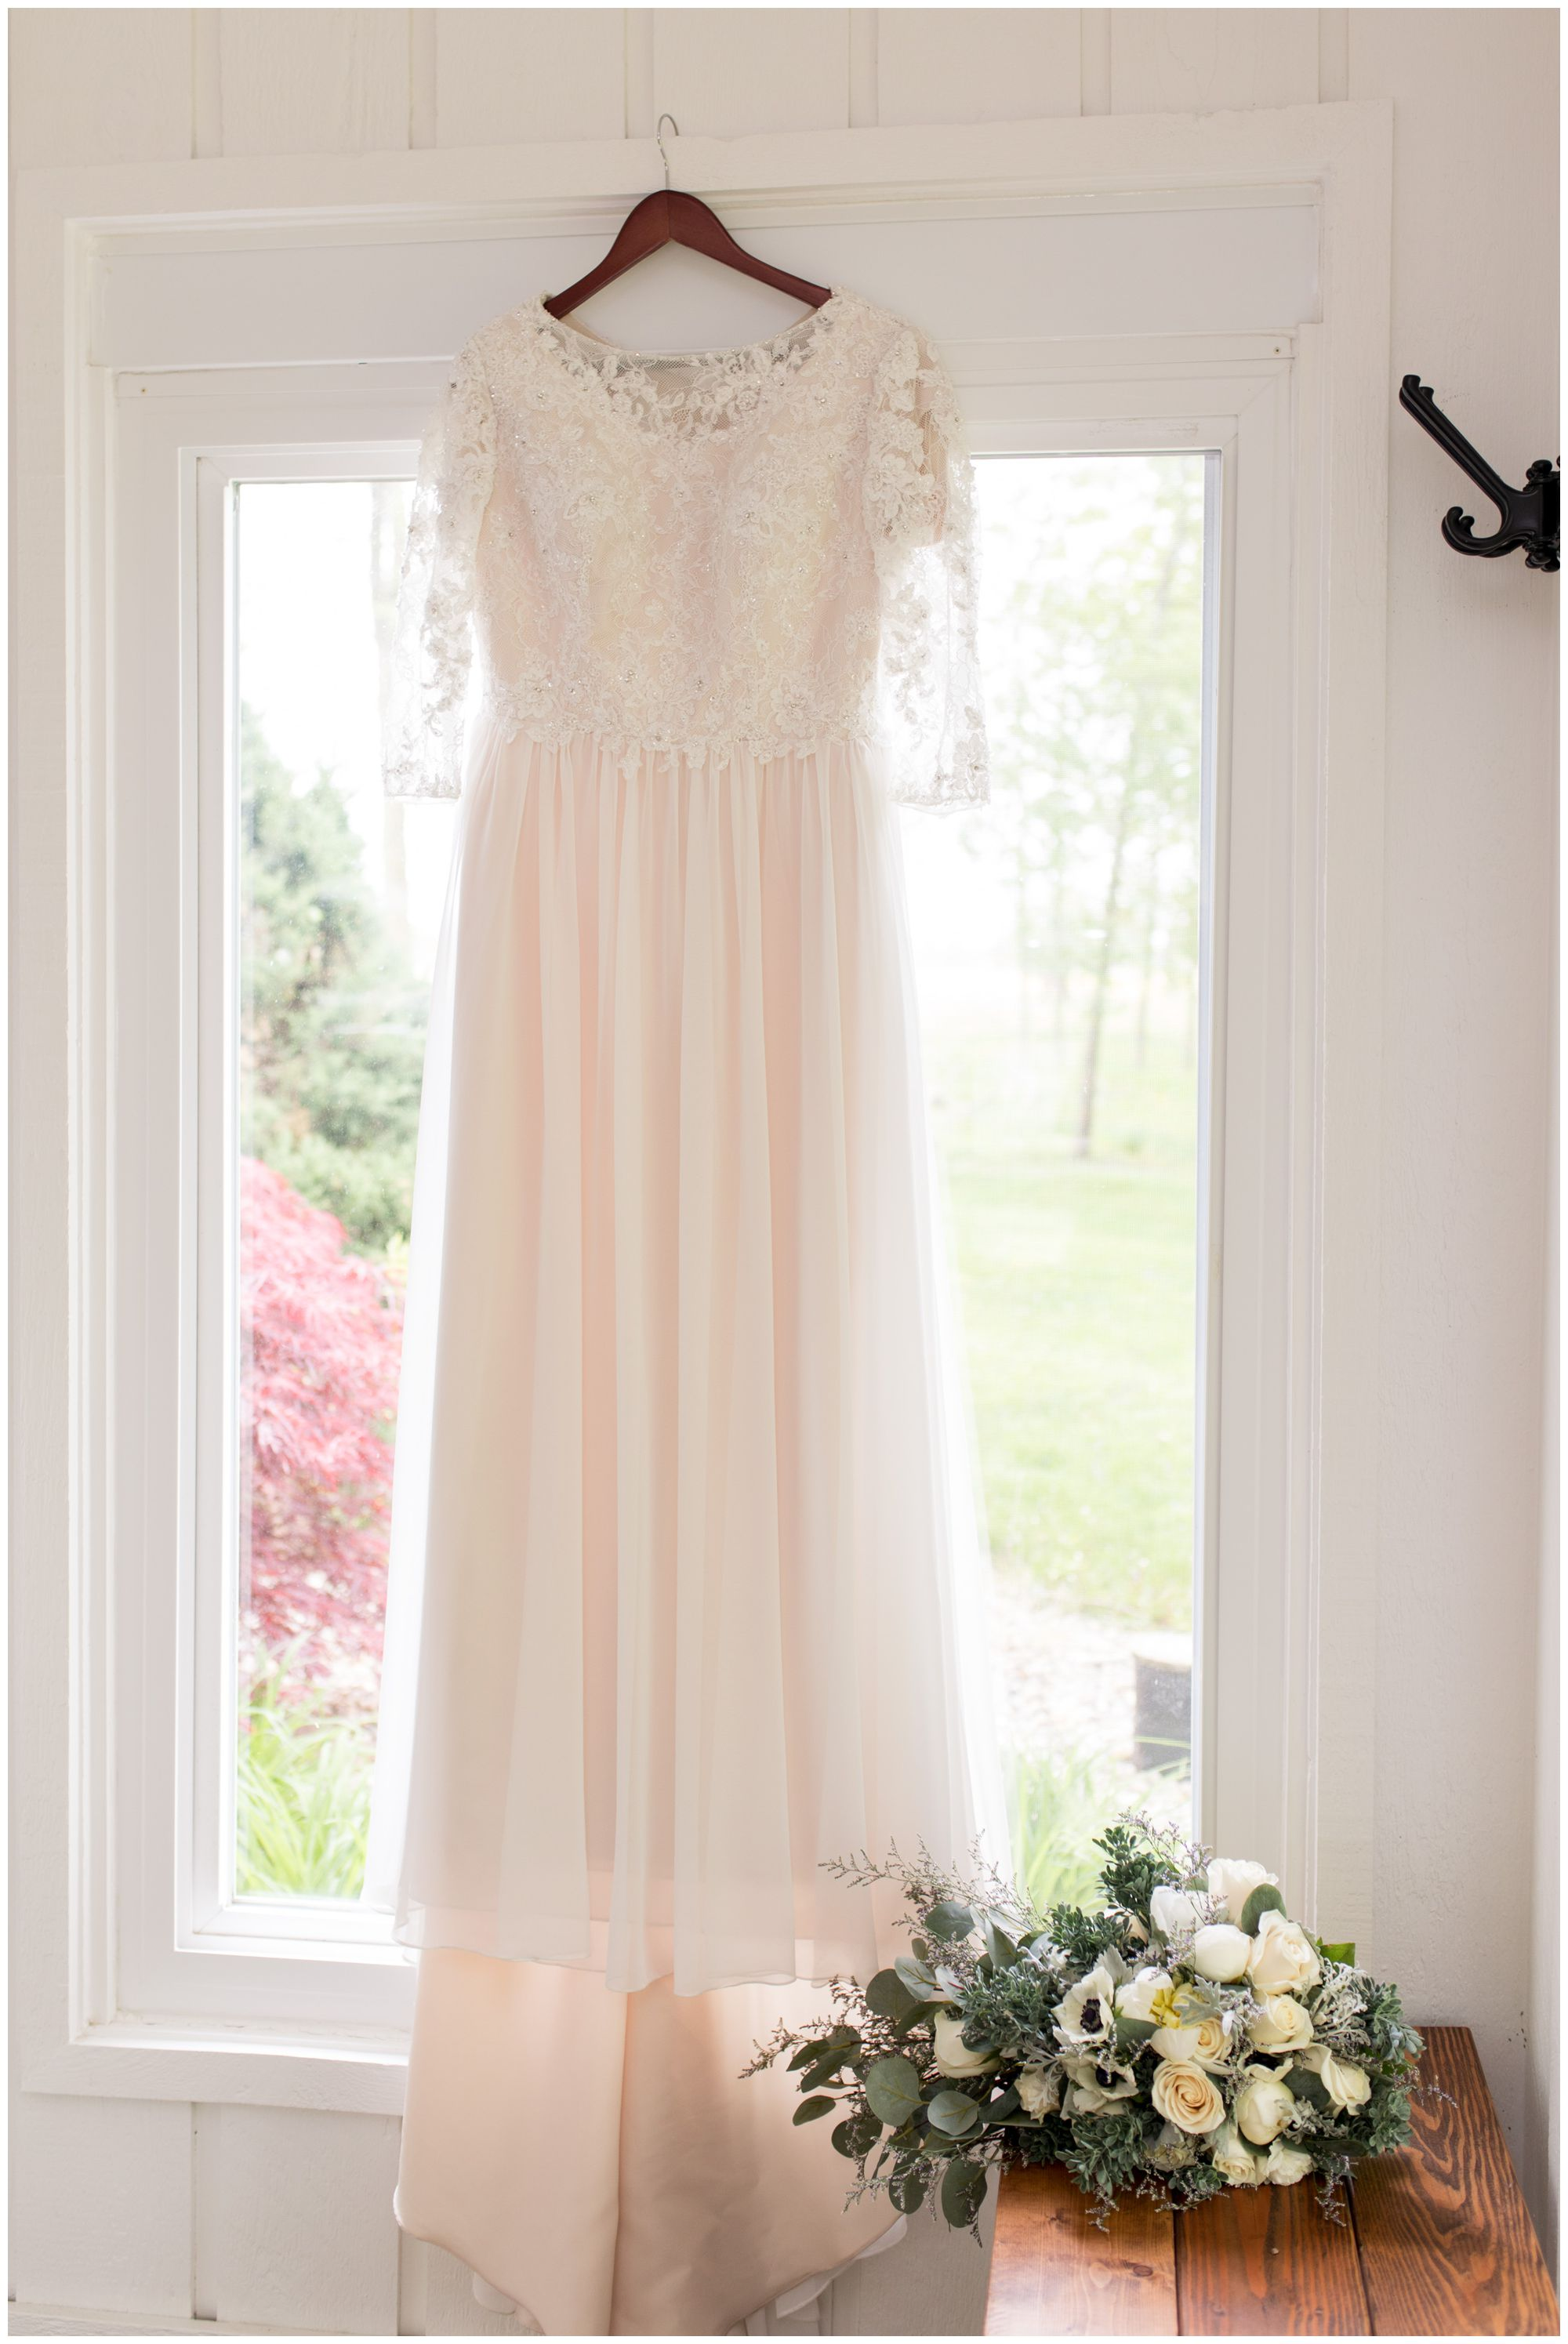 bride's wedding dress hanging in window at The Creek House at Burton Farm in Muncie Indiana